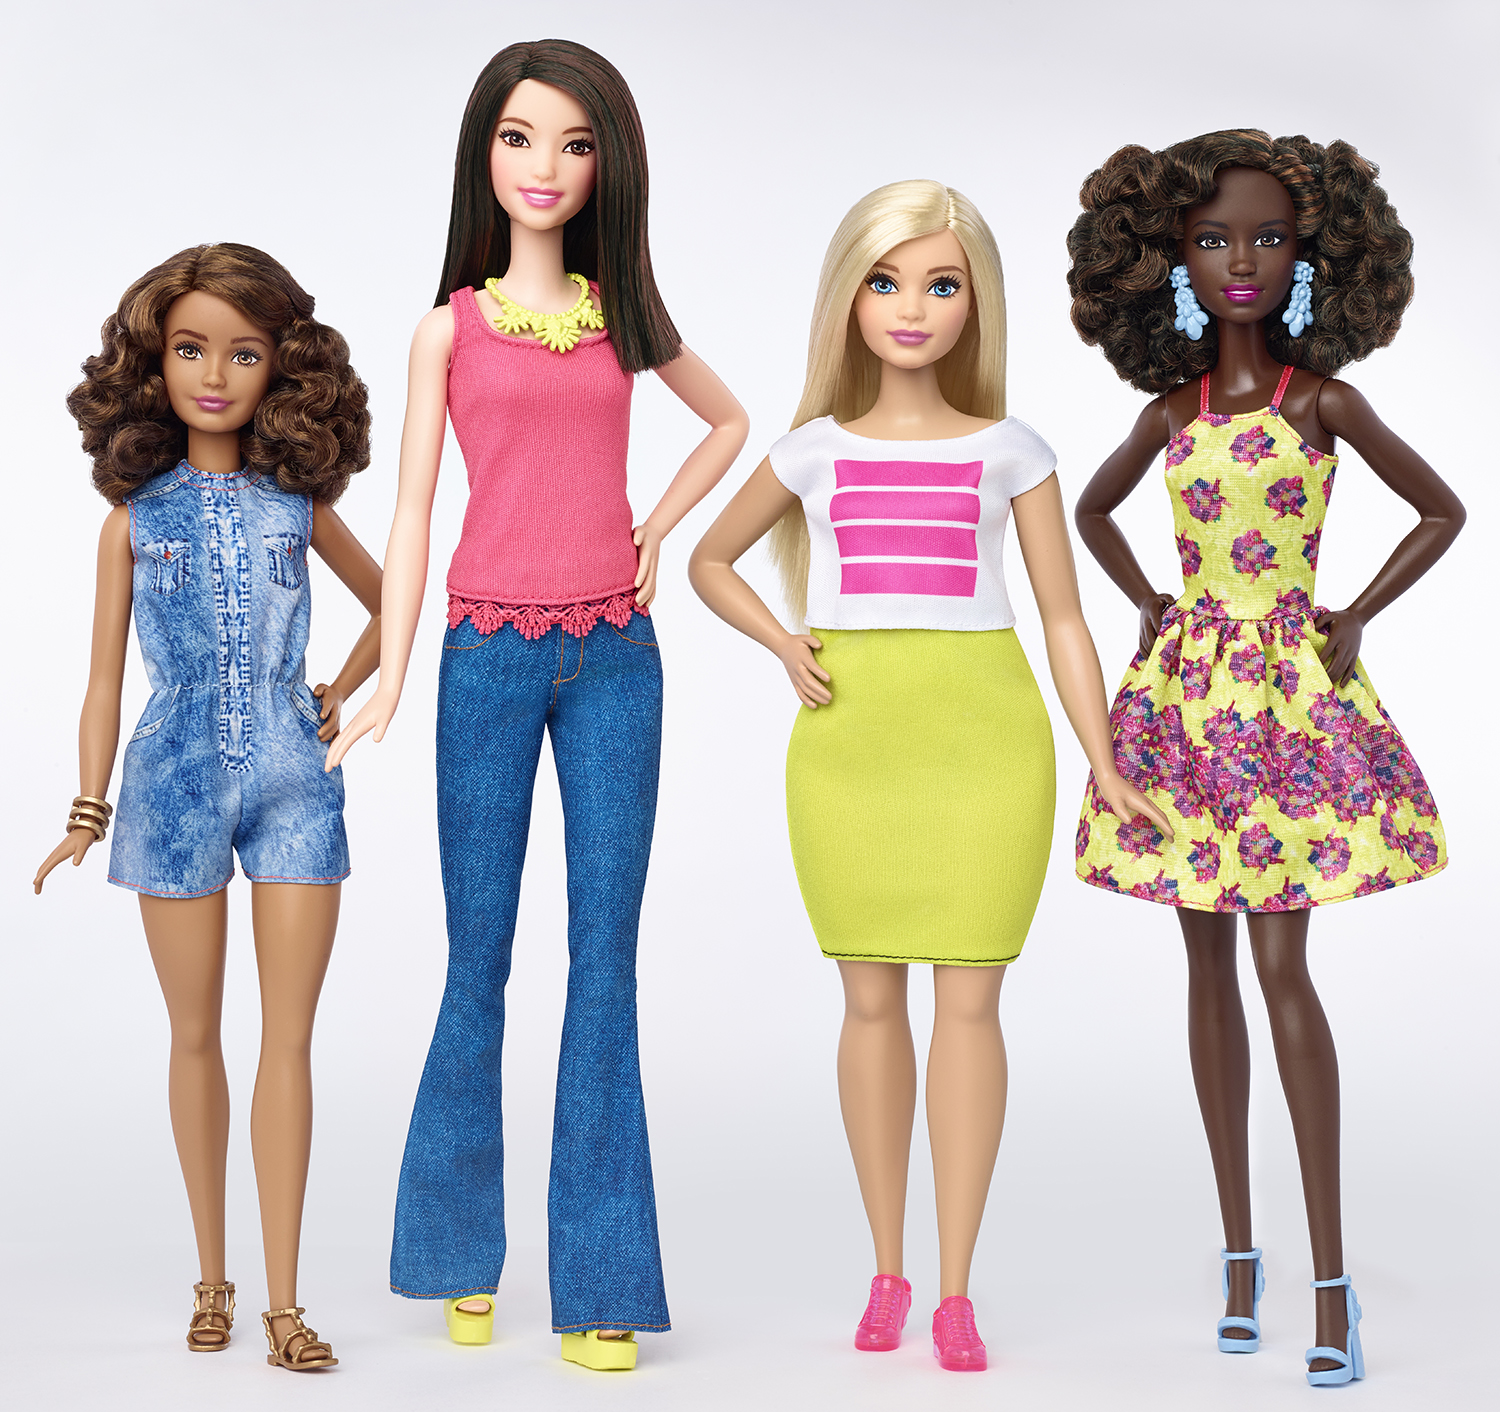 A new Barbie line for 2016 will feature four body types, seven skin tones, 22 eye colors, 24 hairstyles and of course, new clothes.